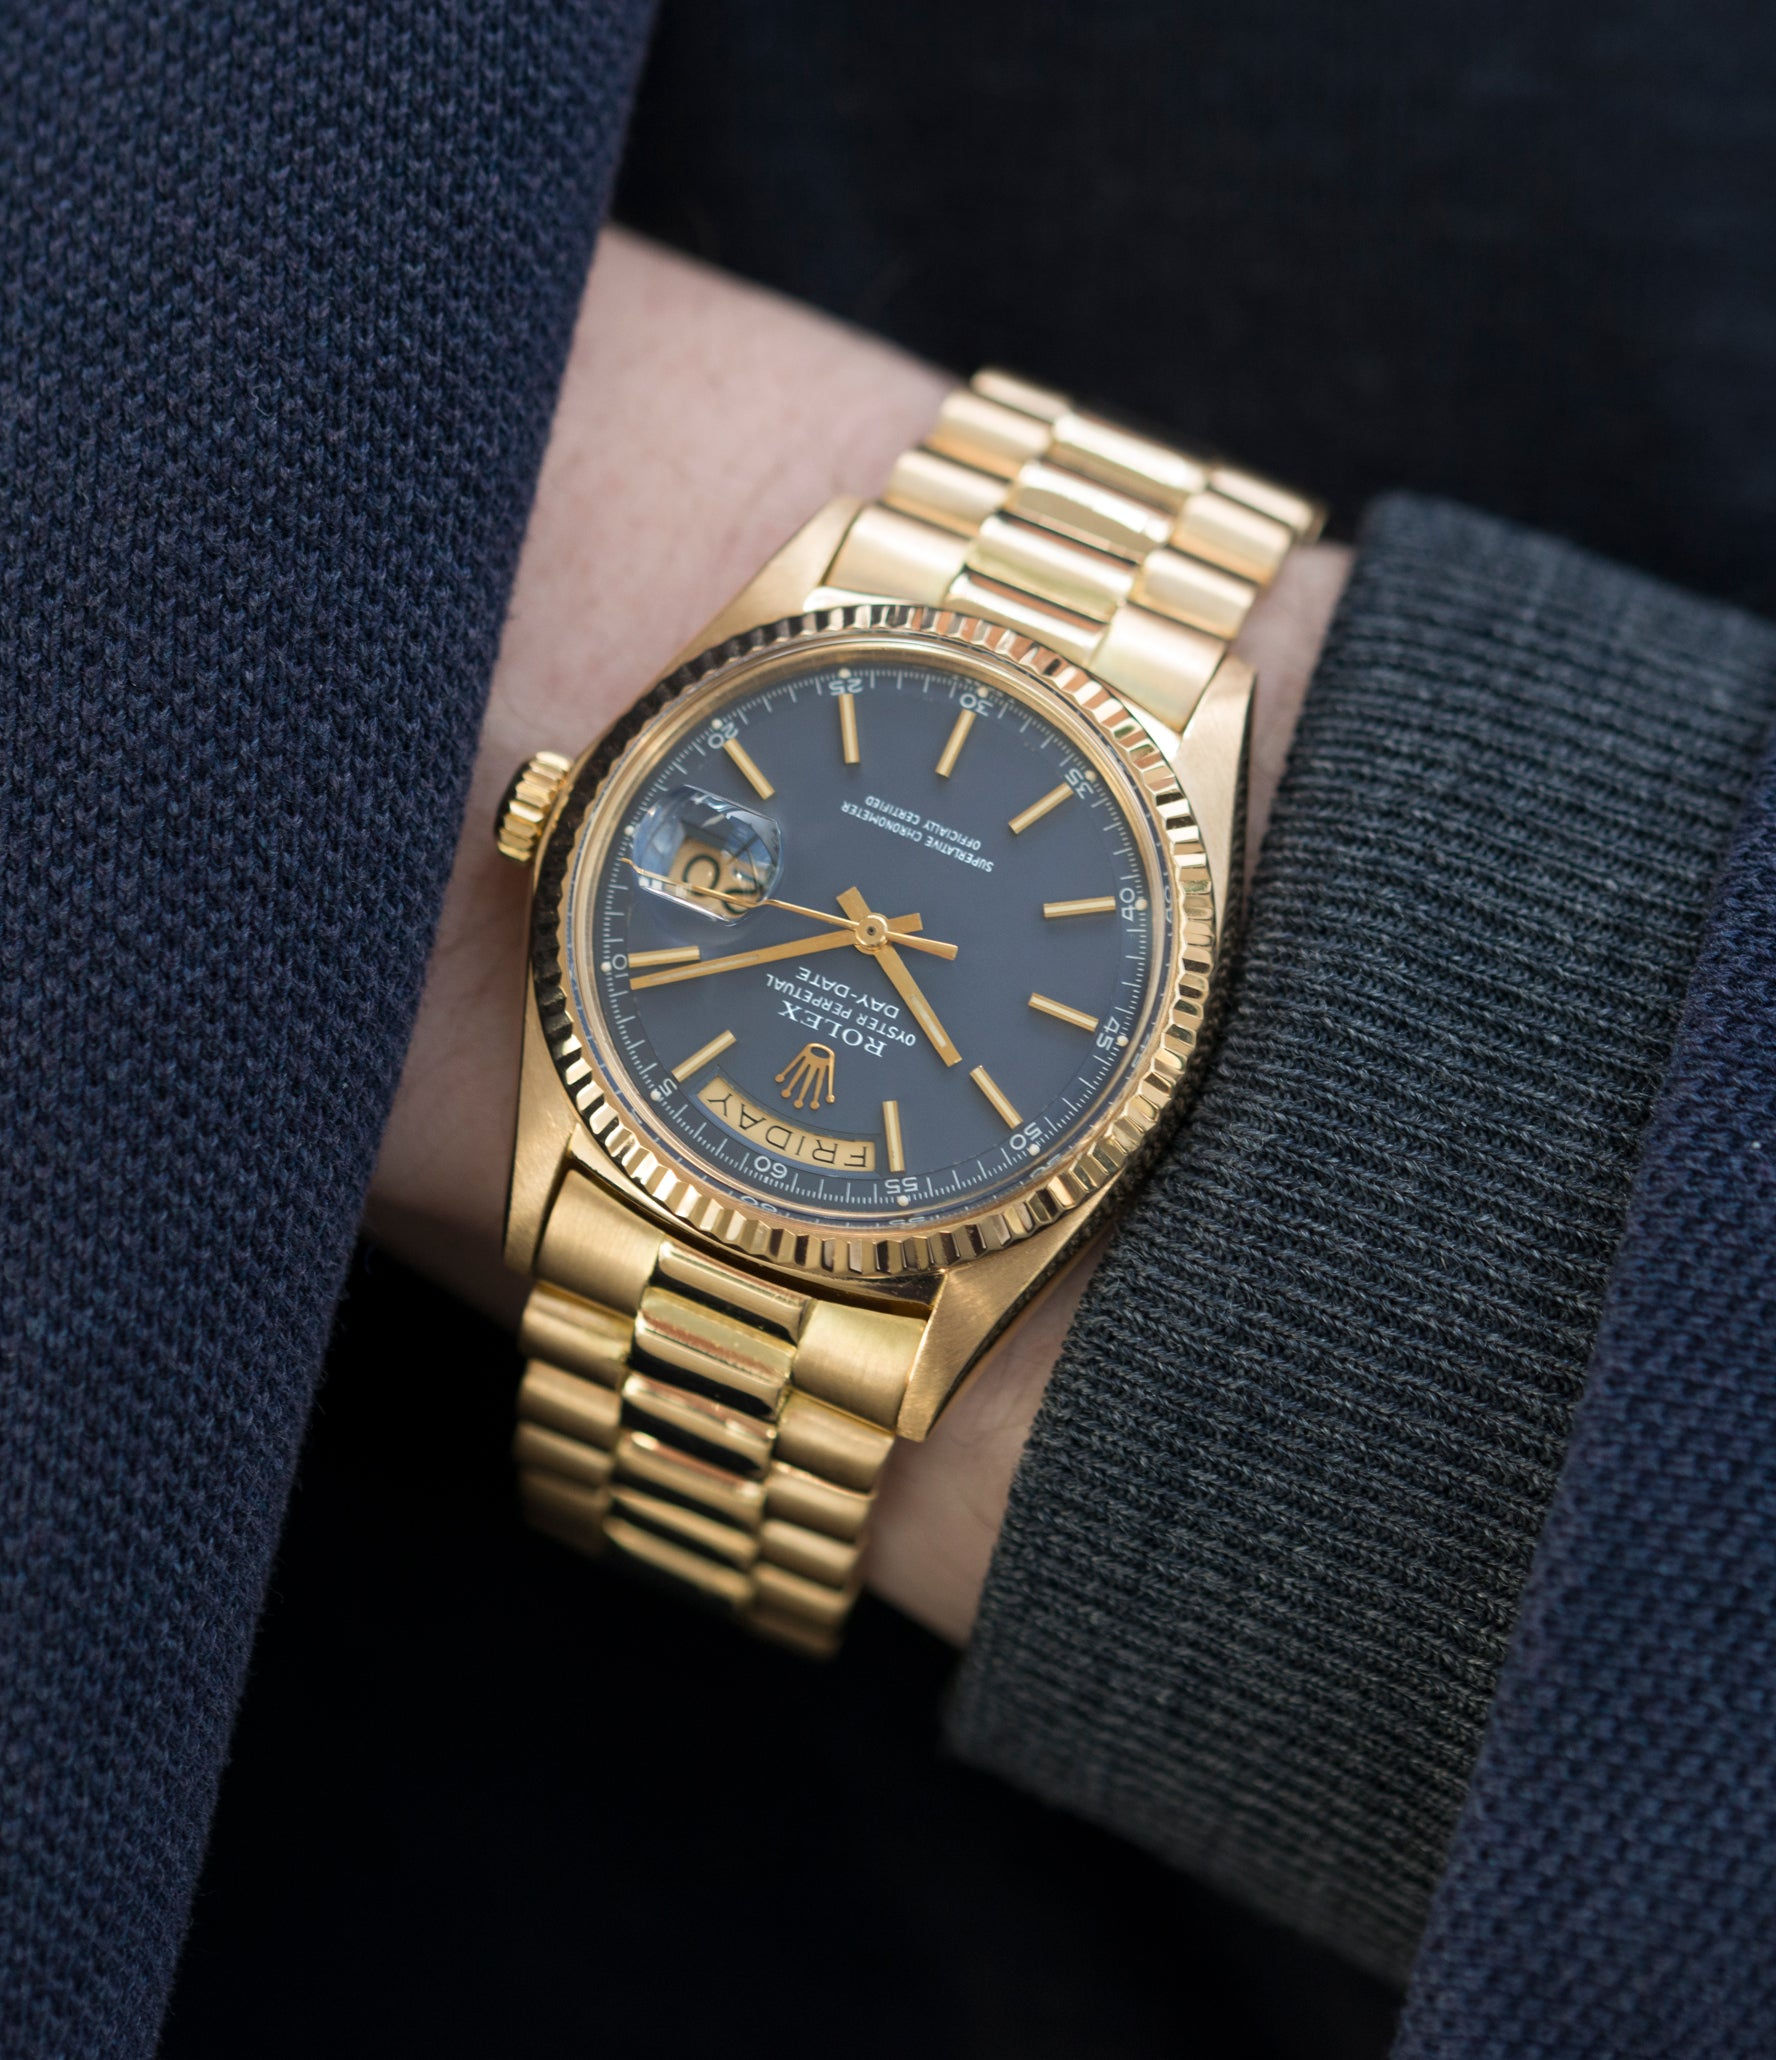 vintage ref. 1803 Rolex Day-Date Oyster Perpetual Cal. 1556 blue dial watch for sale online at A Collected Man London UK specialist of rare watches